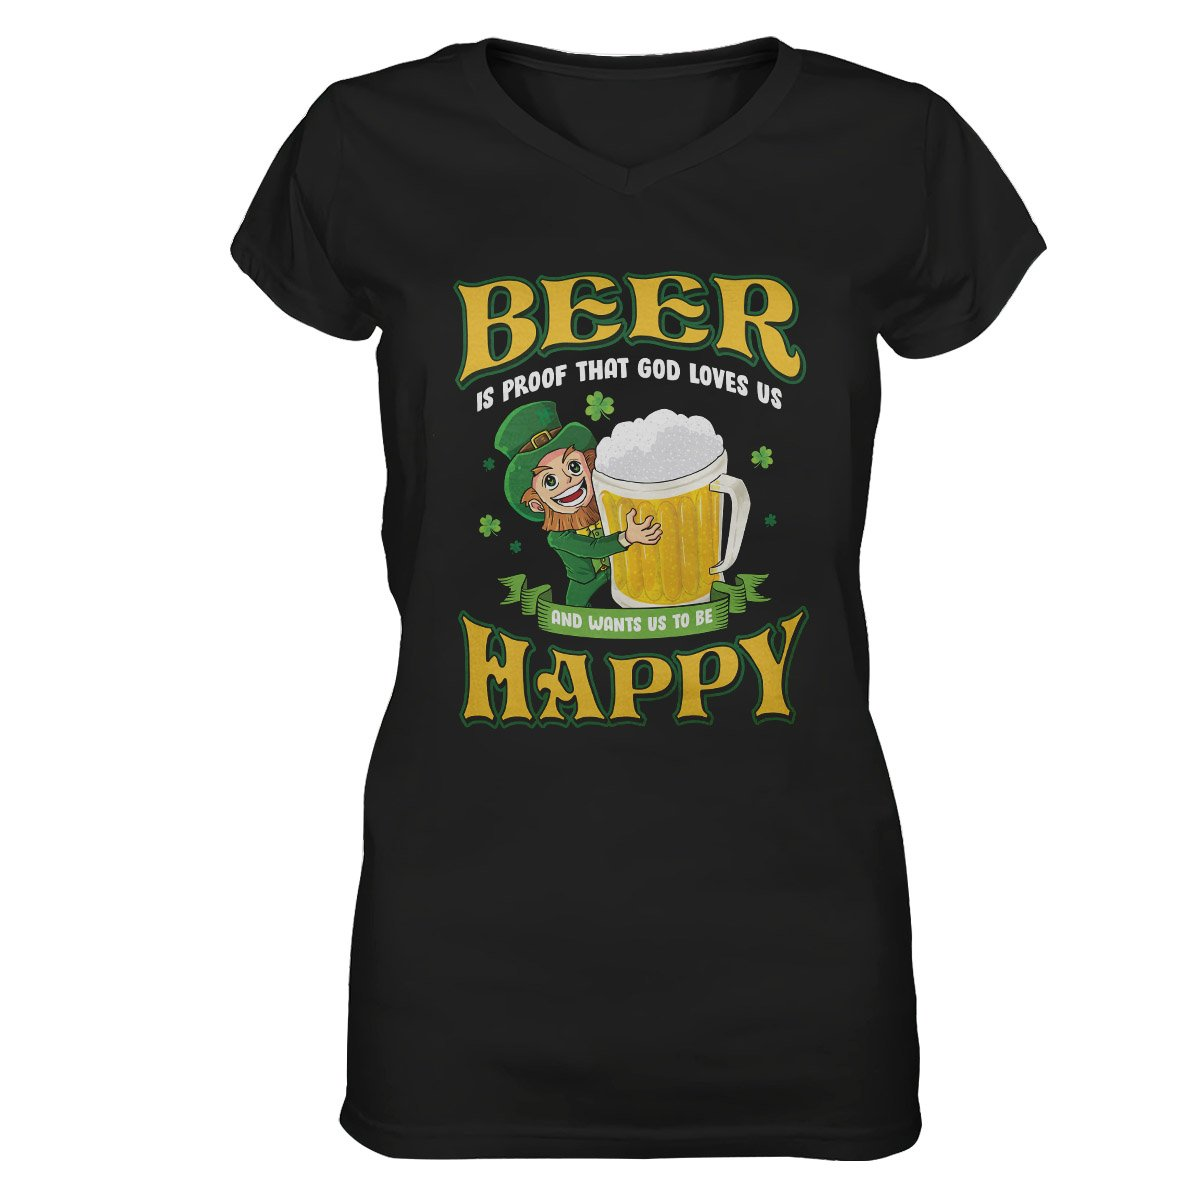 Beer Is Proof That God Loves Us And Wants Us To Be Happy EZ30 3001 Women V-neck T-shirt